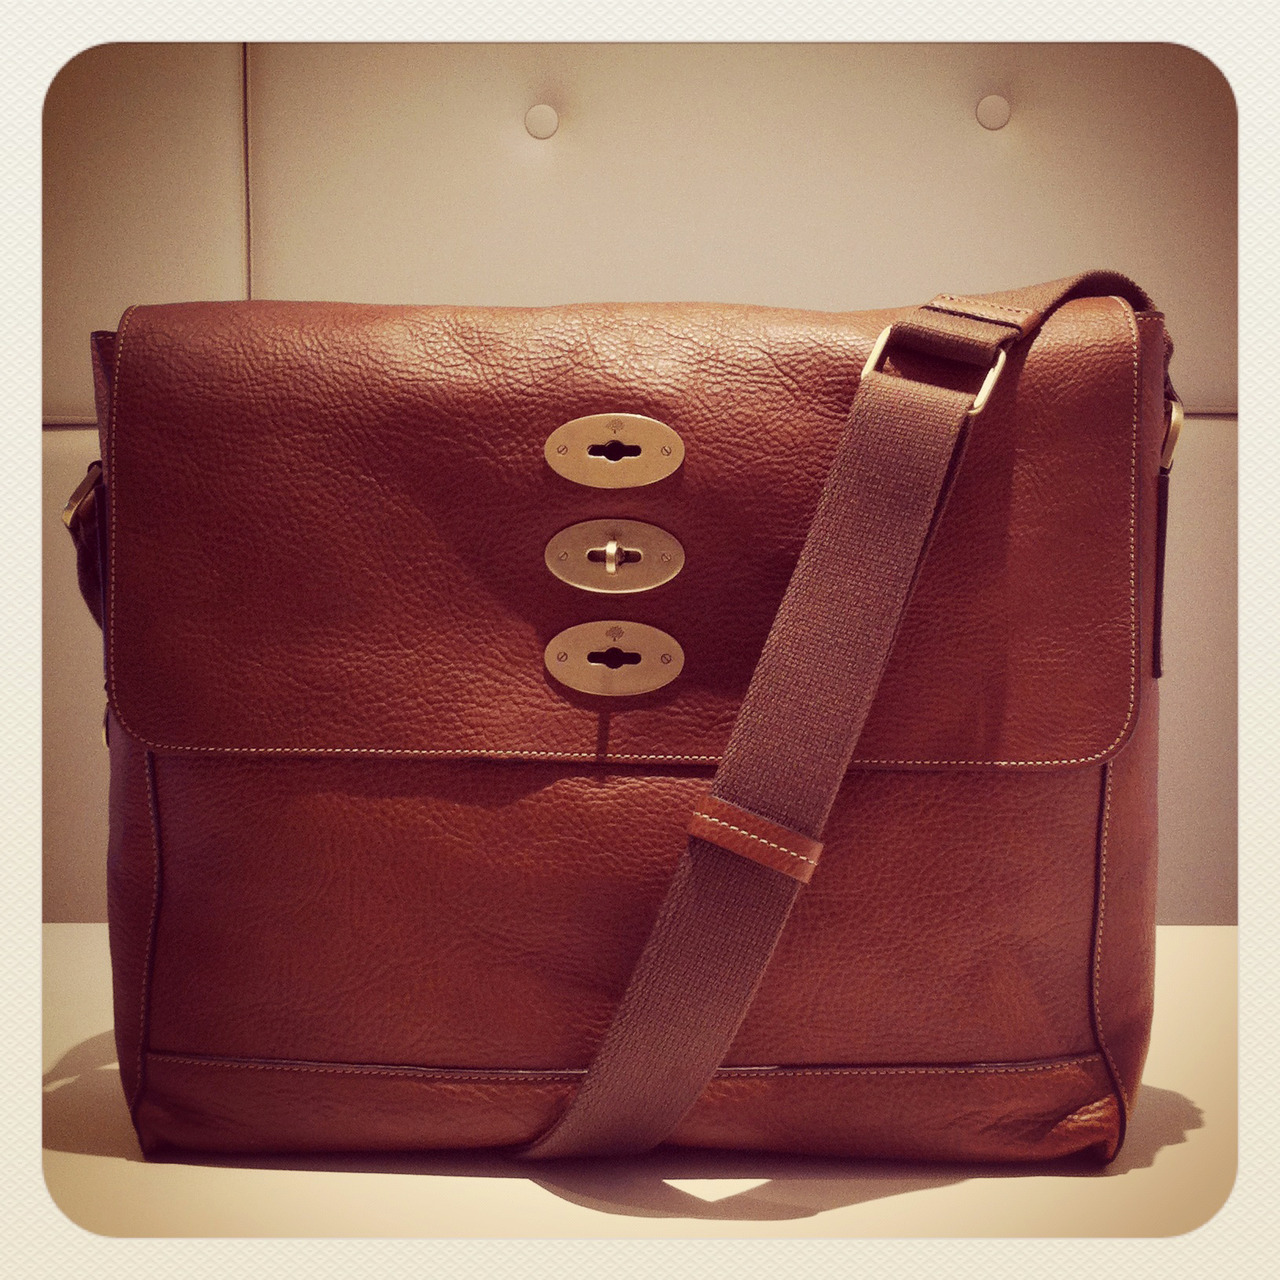 We're coveting the Brynmore messenger bag by Mulberry – a great option for work and weekend alike. SHOP at: http://bit.ly/TvFsKL